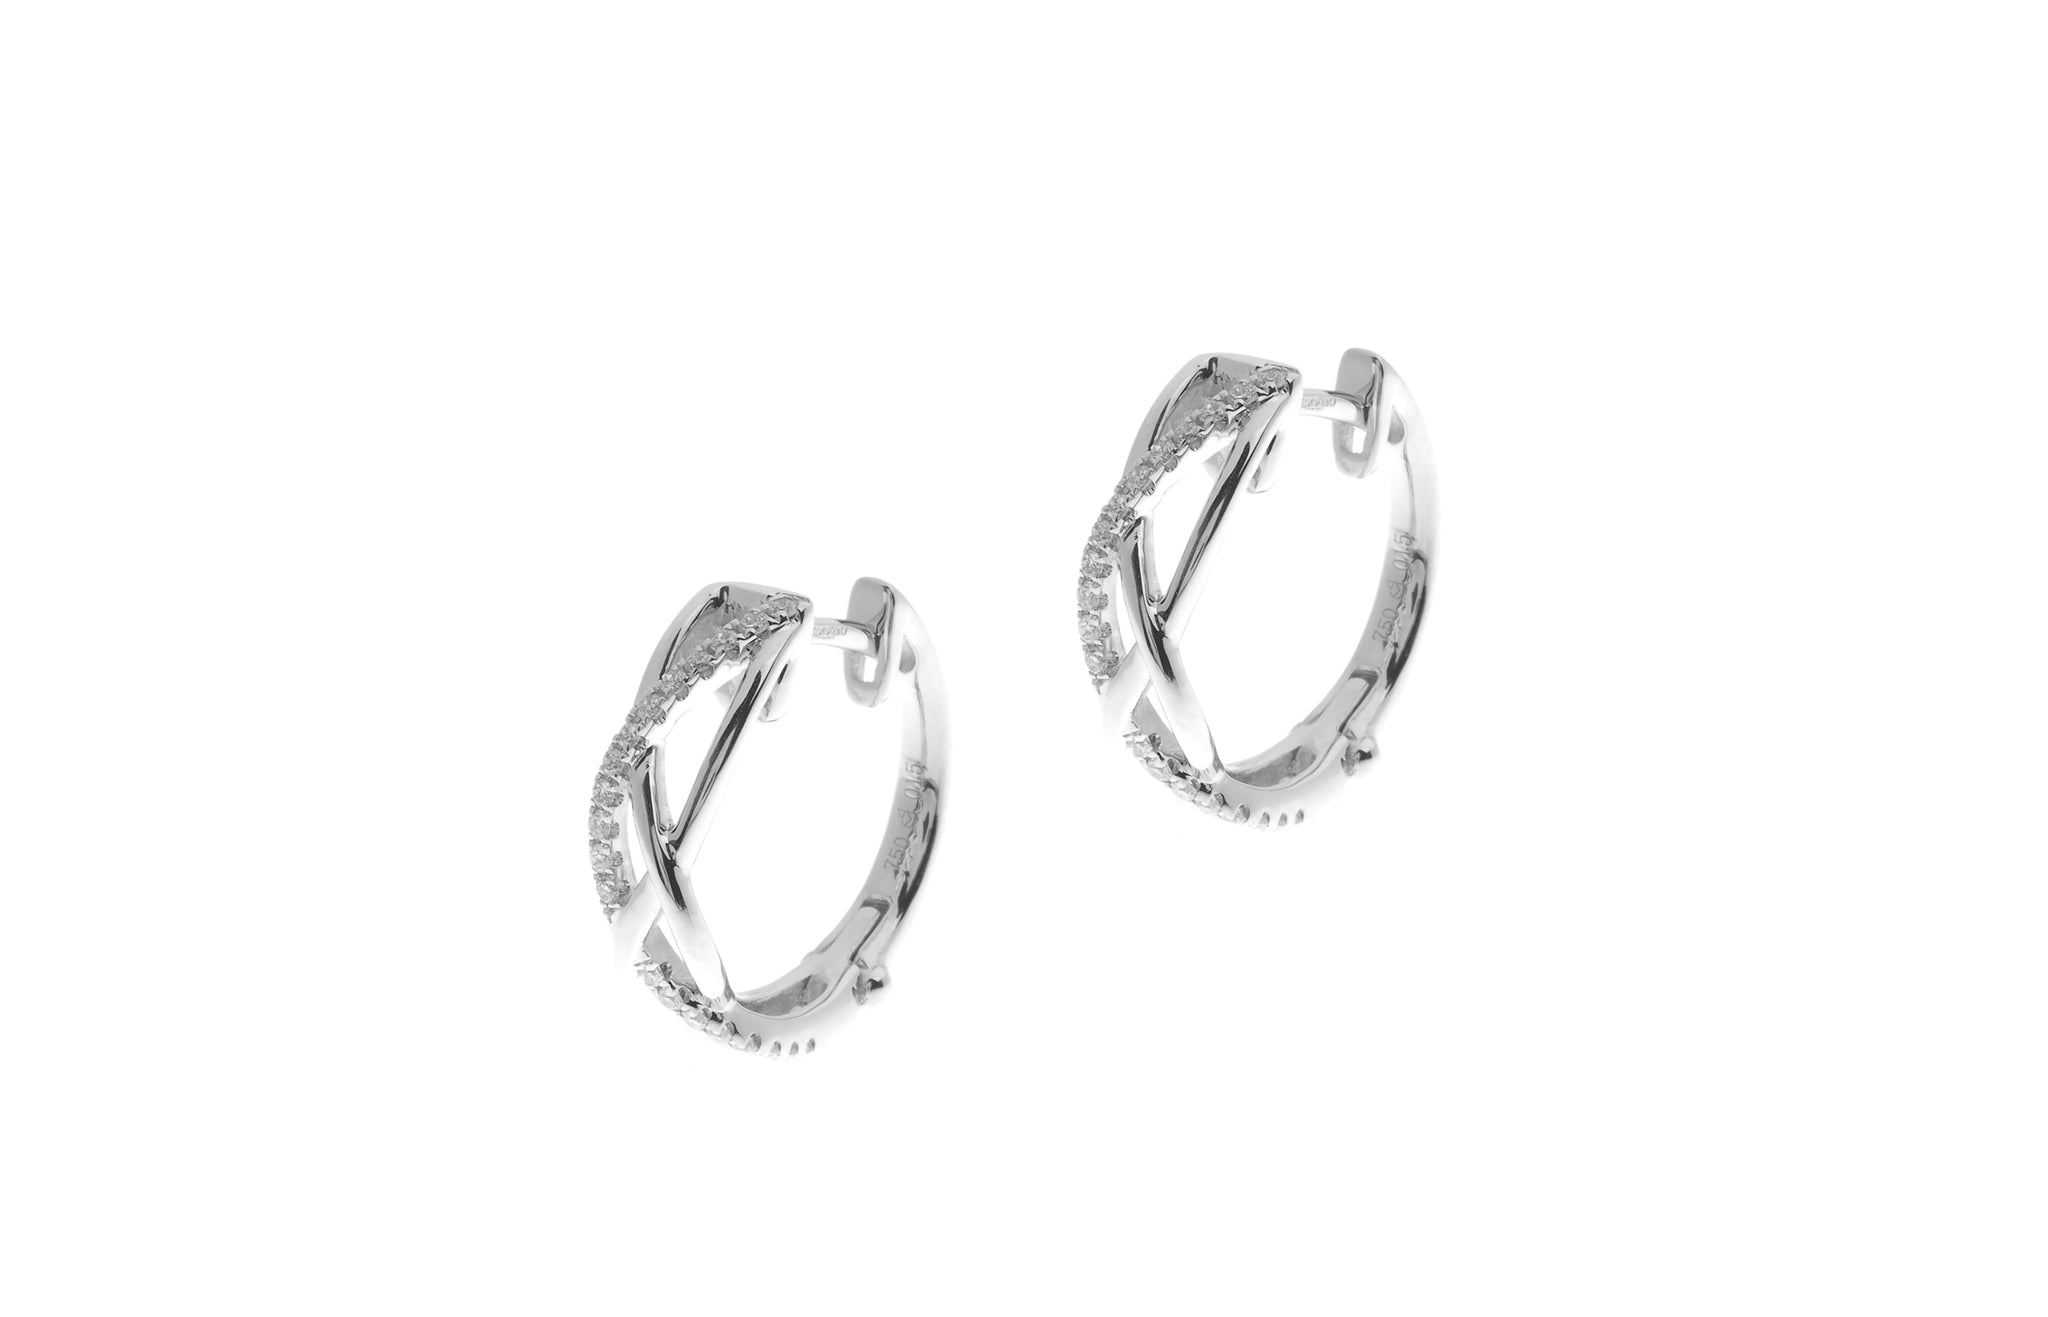 18ct White Gold 0.15ct Diamond Hoop Earrings (E43114-5)